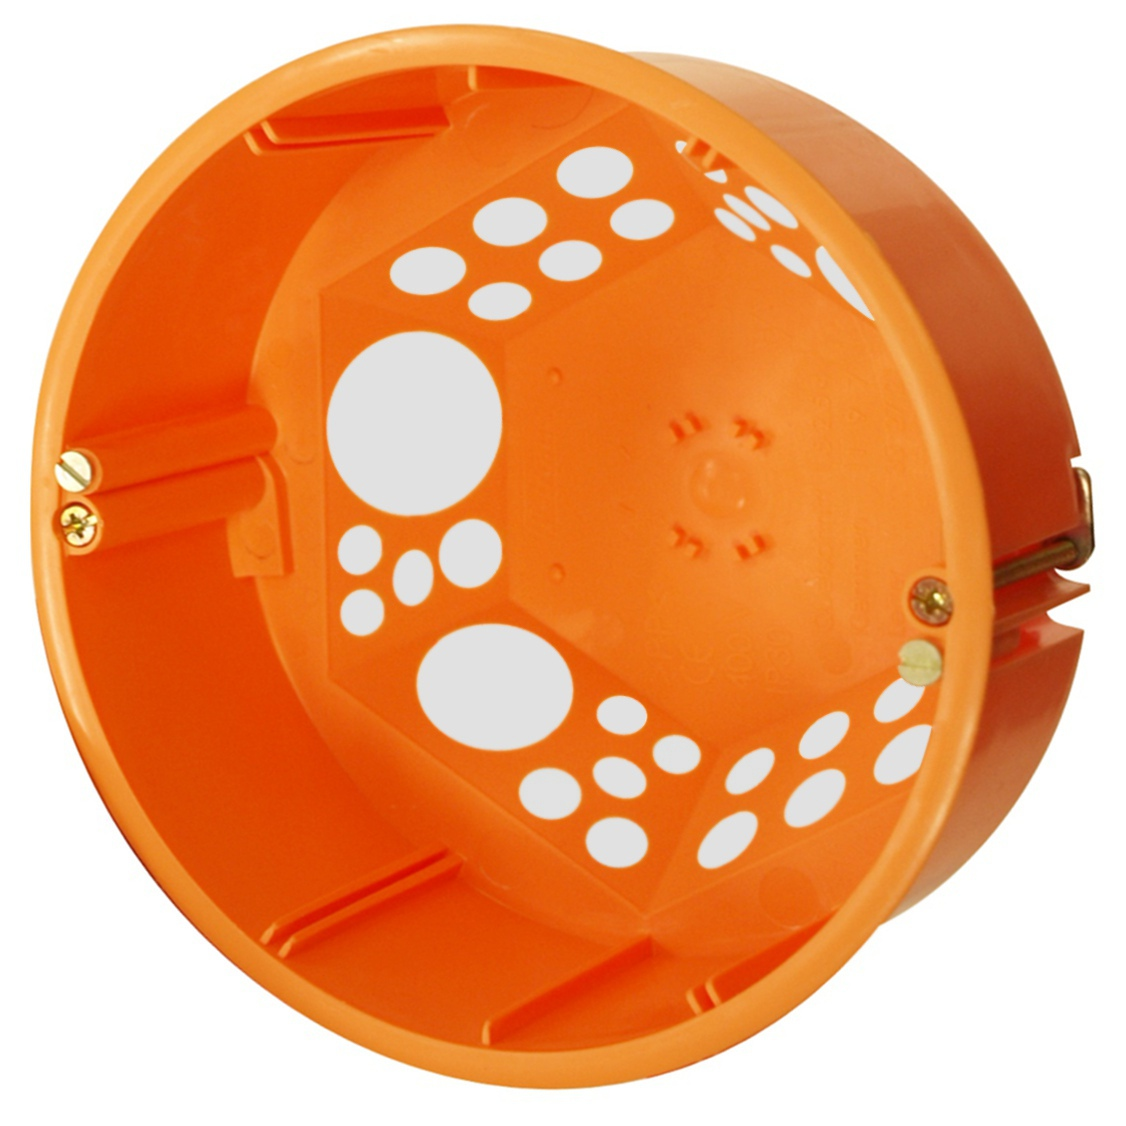 Flush windproof cavity wall junction box, Ø 120 mm with cap